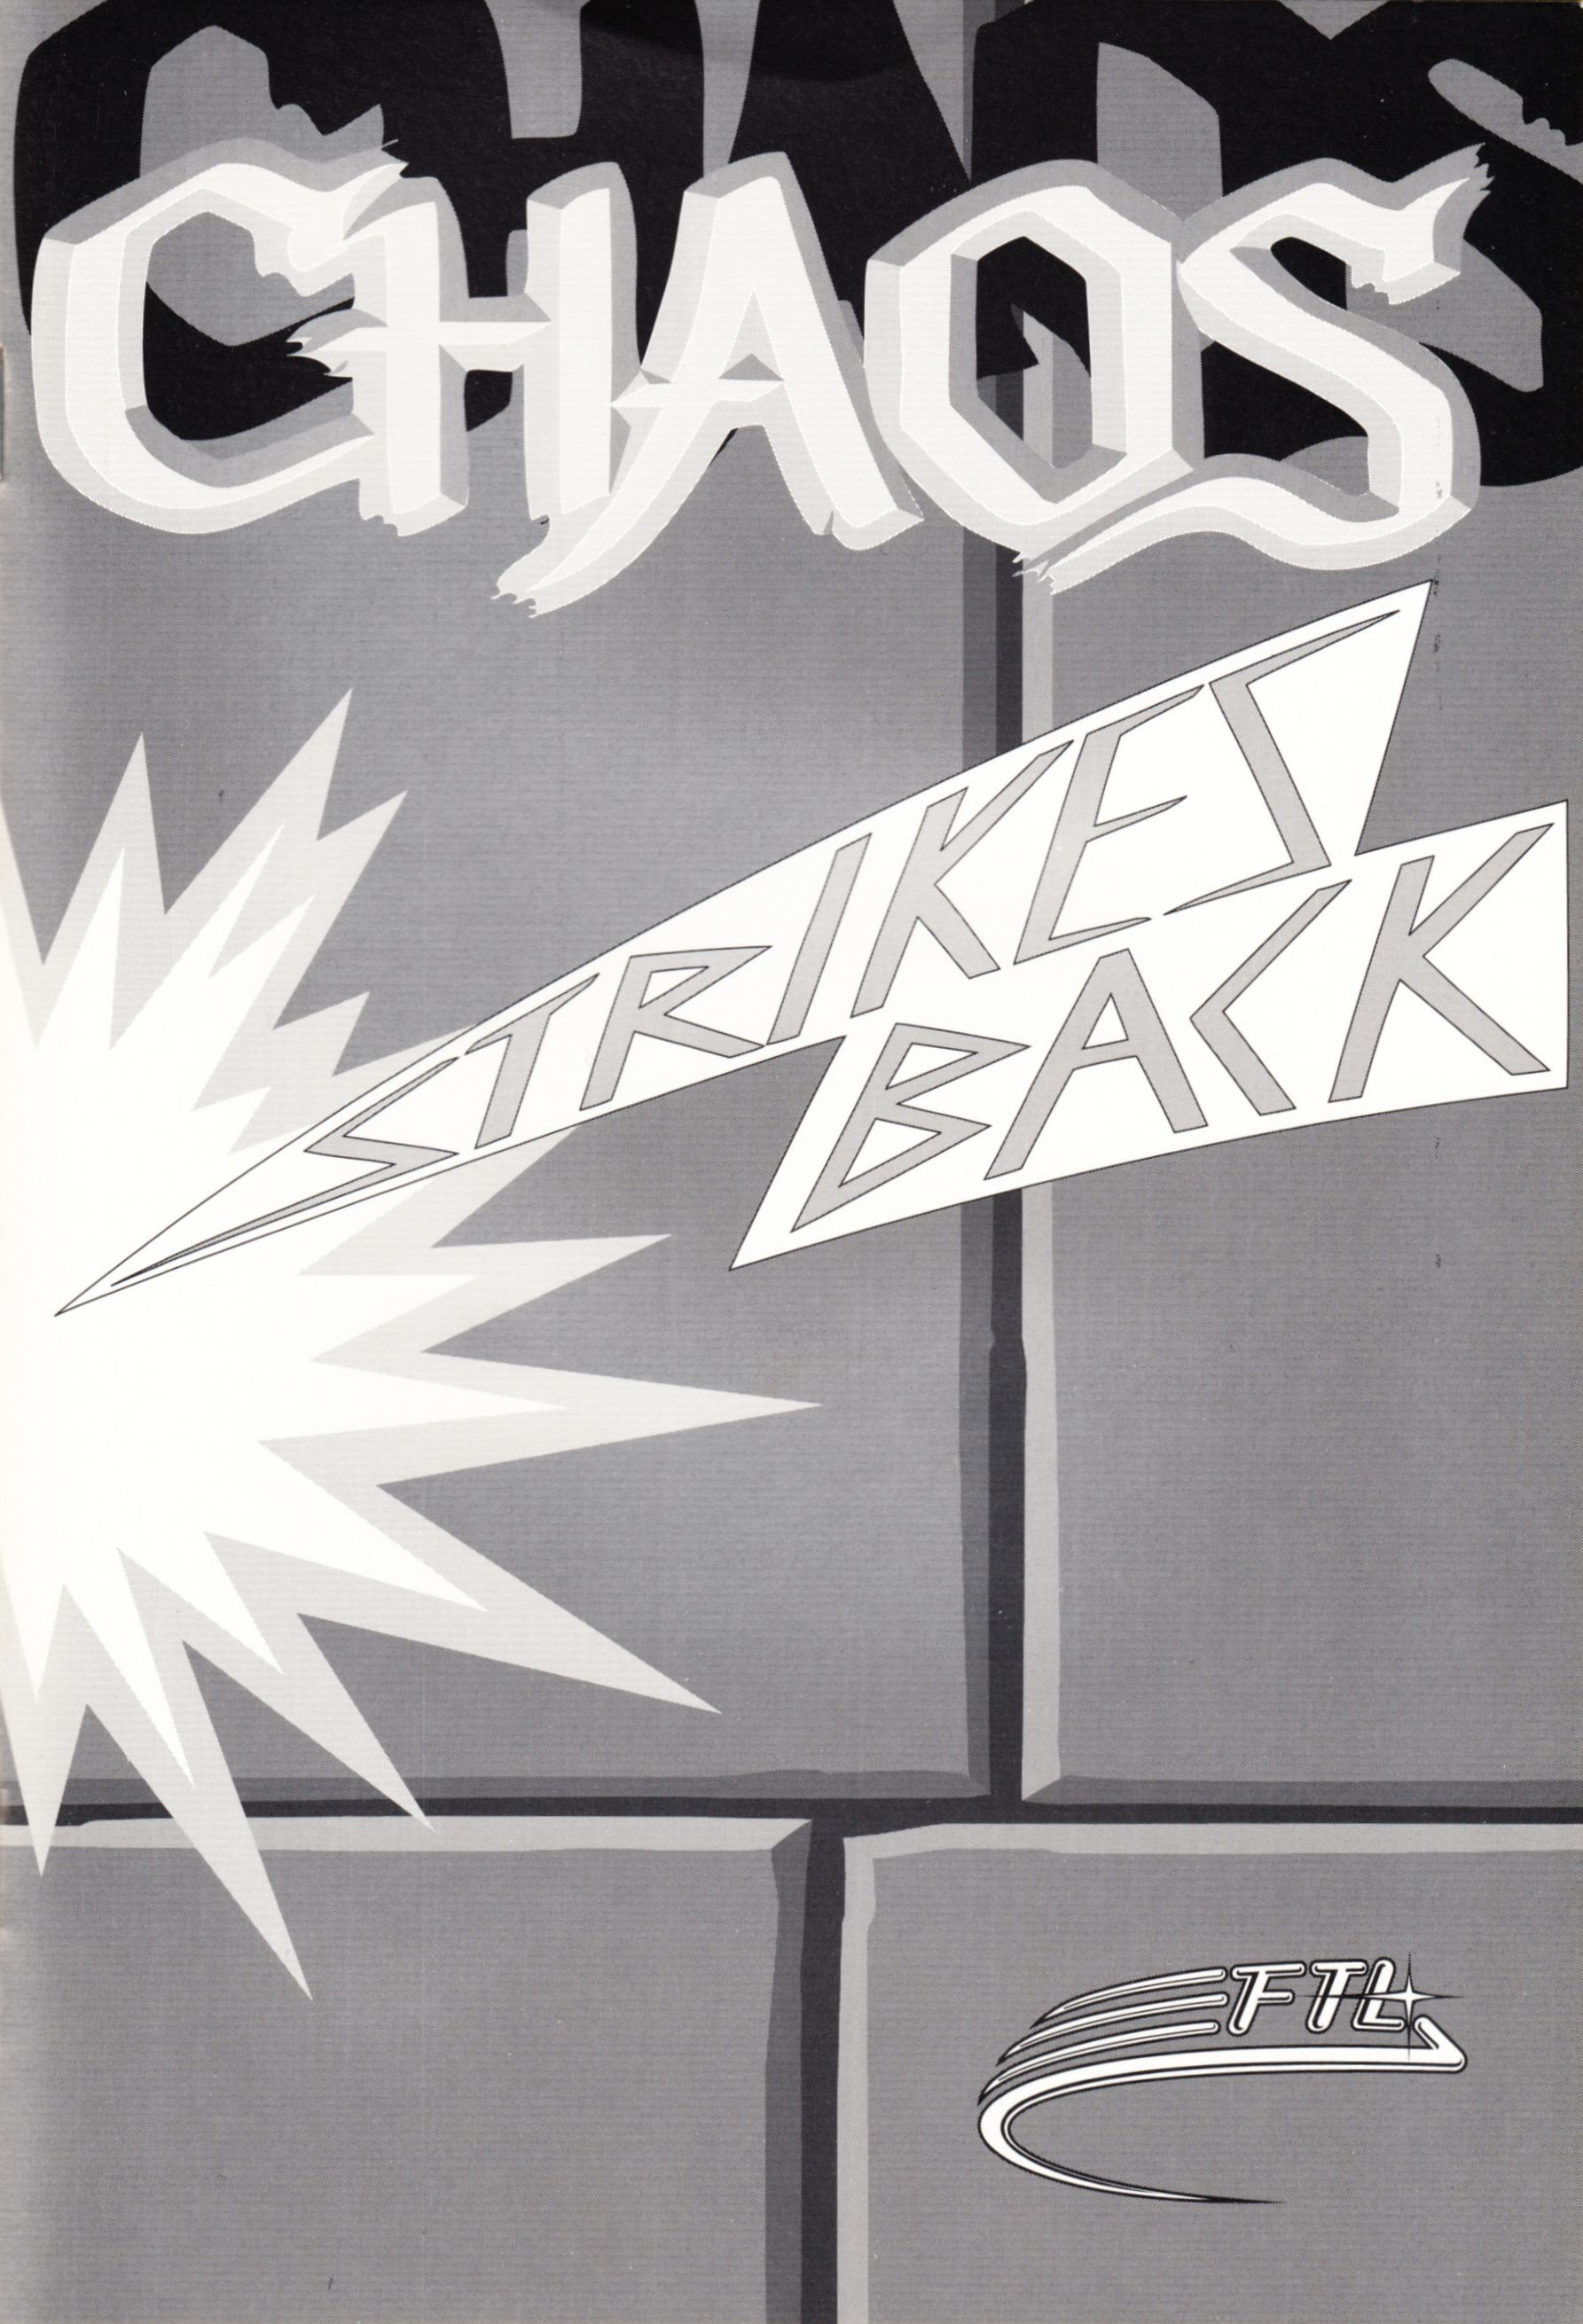 Game - Chaos Strikes Back - UK - Atari ST - Manual - Page 001 - Scan